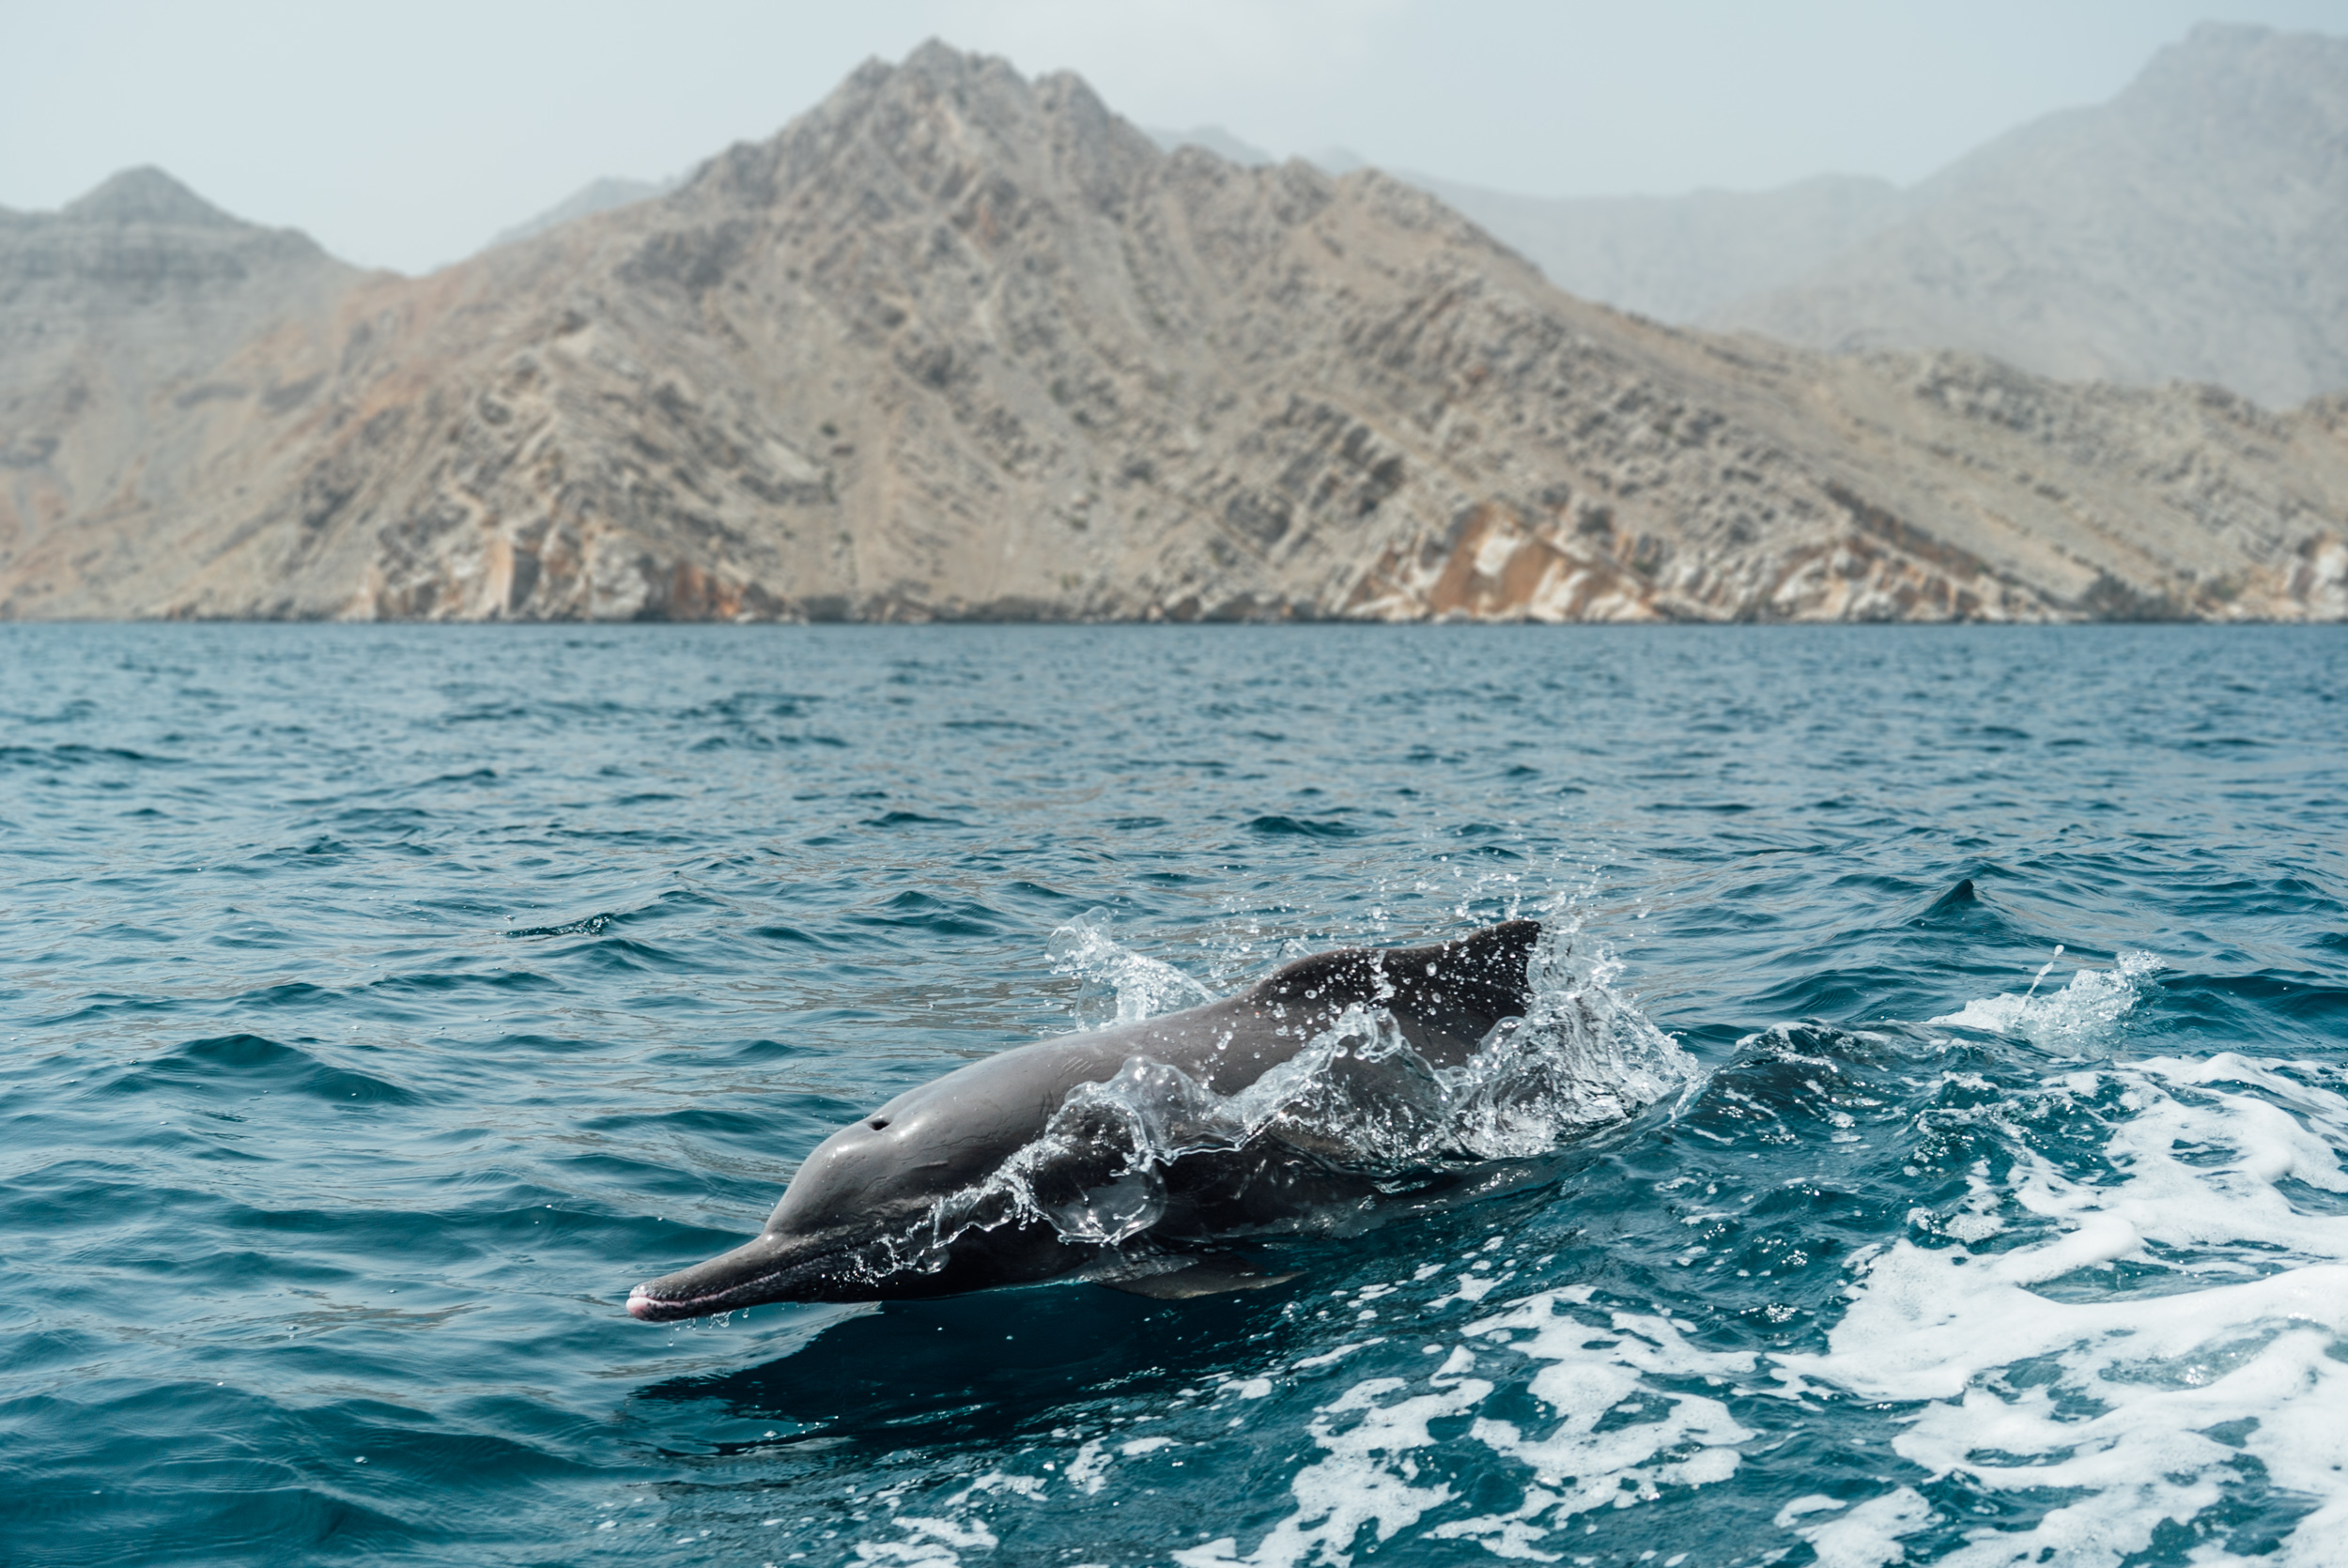 photo-oman-dolphin-Diana-Scalfati.jpg